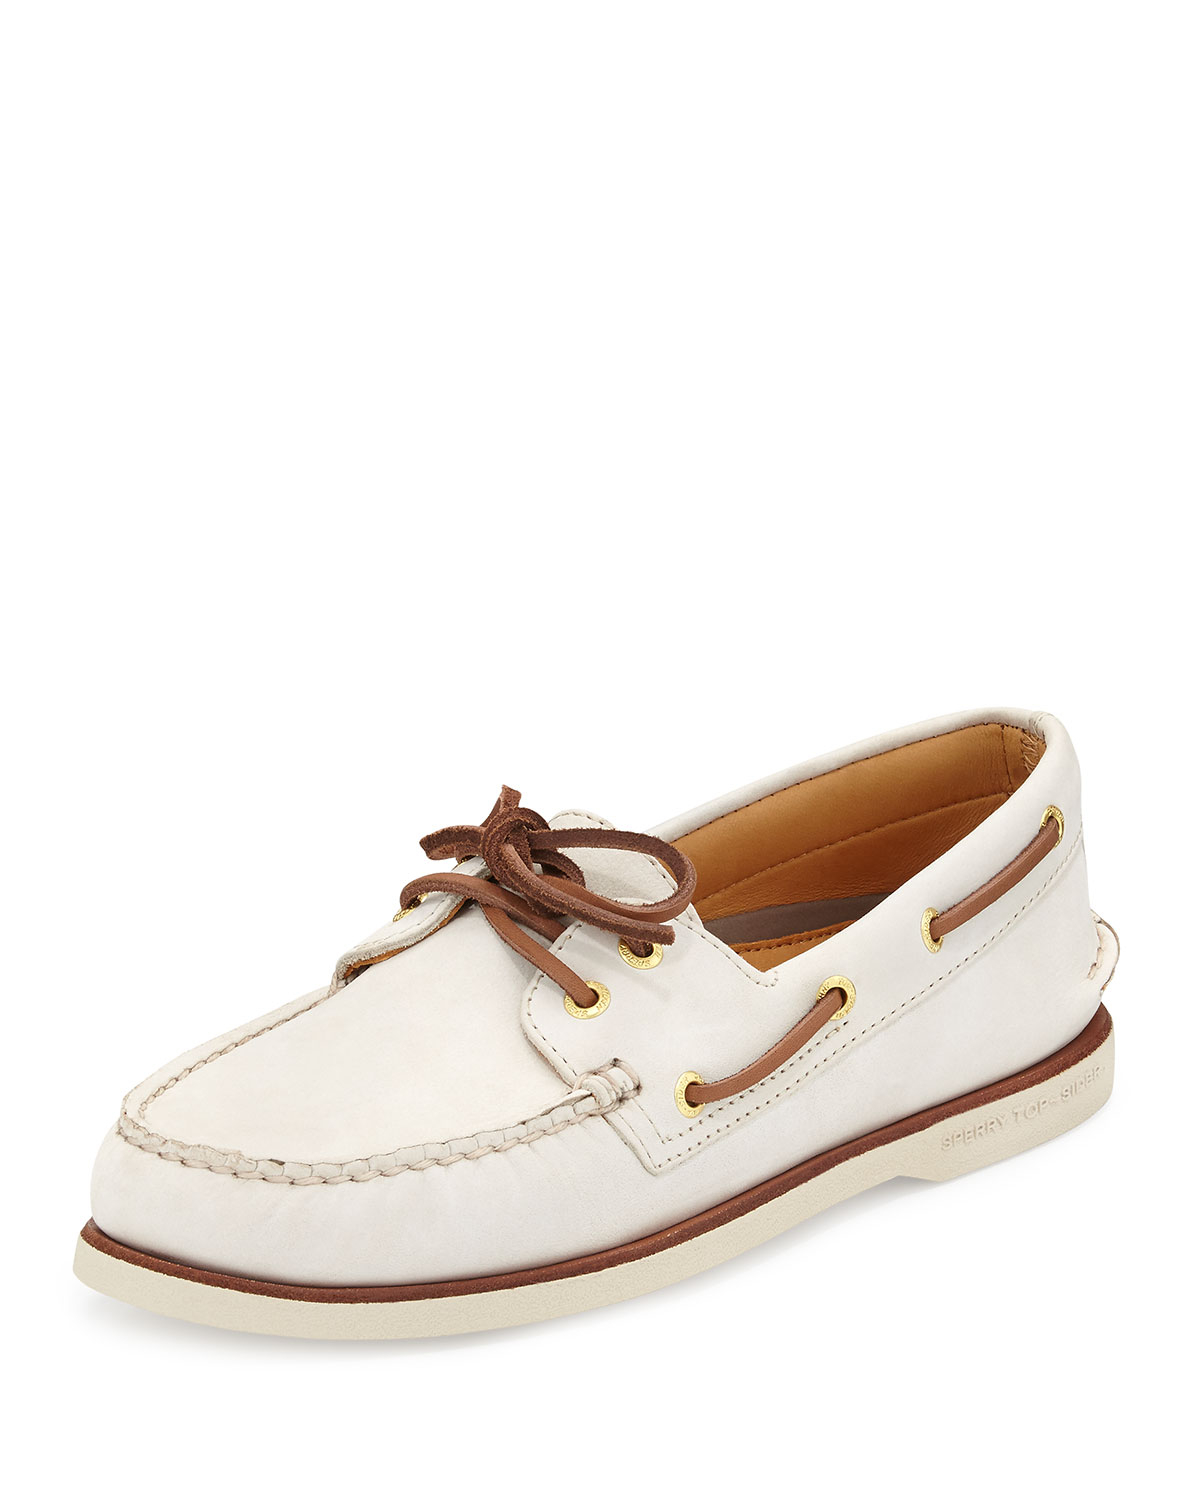 4cf7a4a32483 Sperry Top-Sider Gold Cup Authentic Original Boat Shoe Ivory in ...